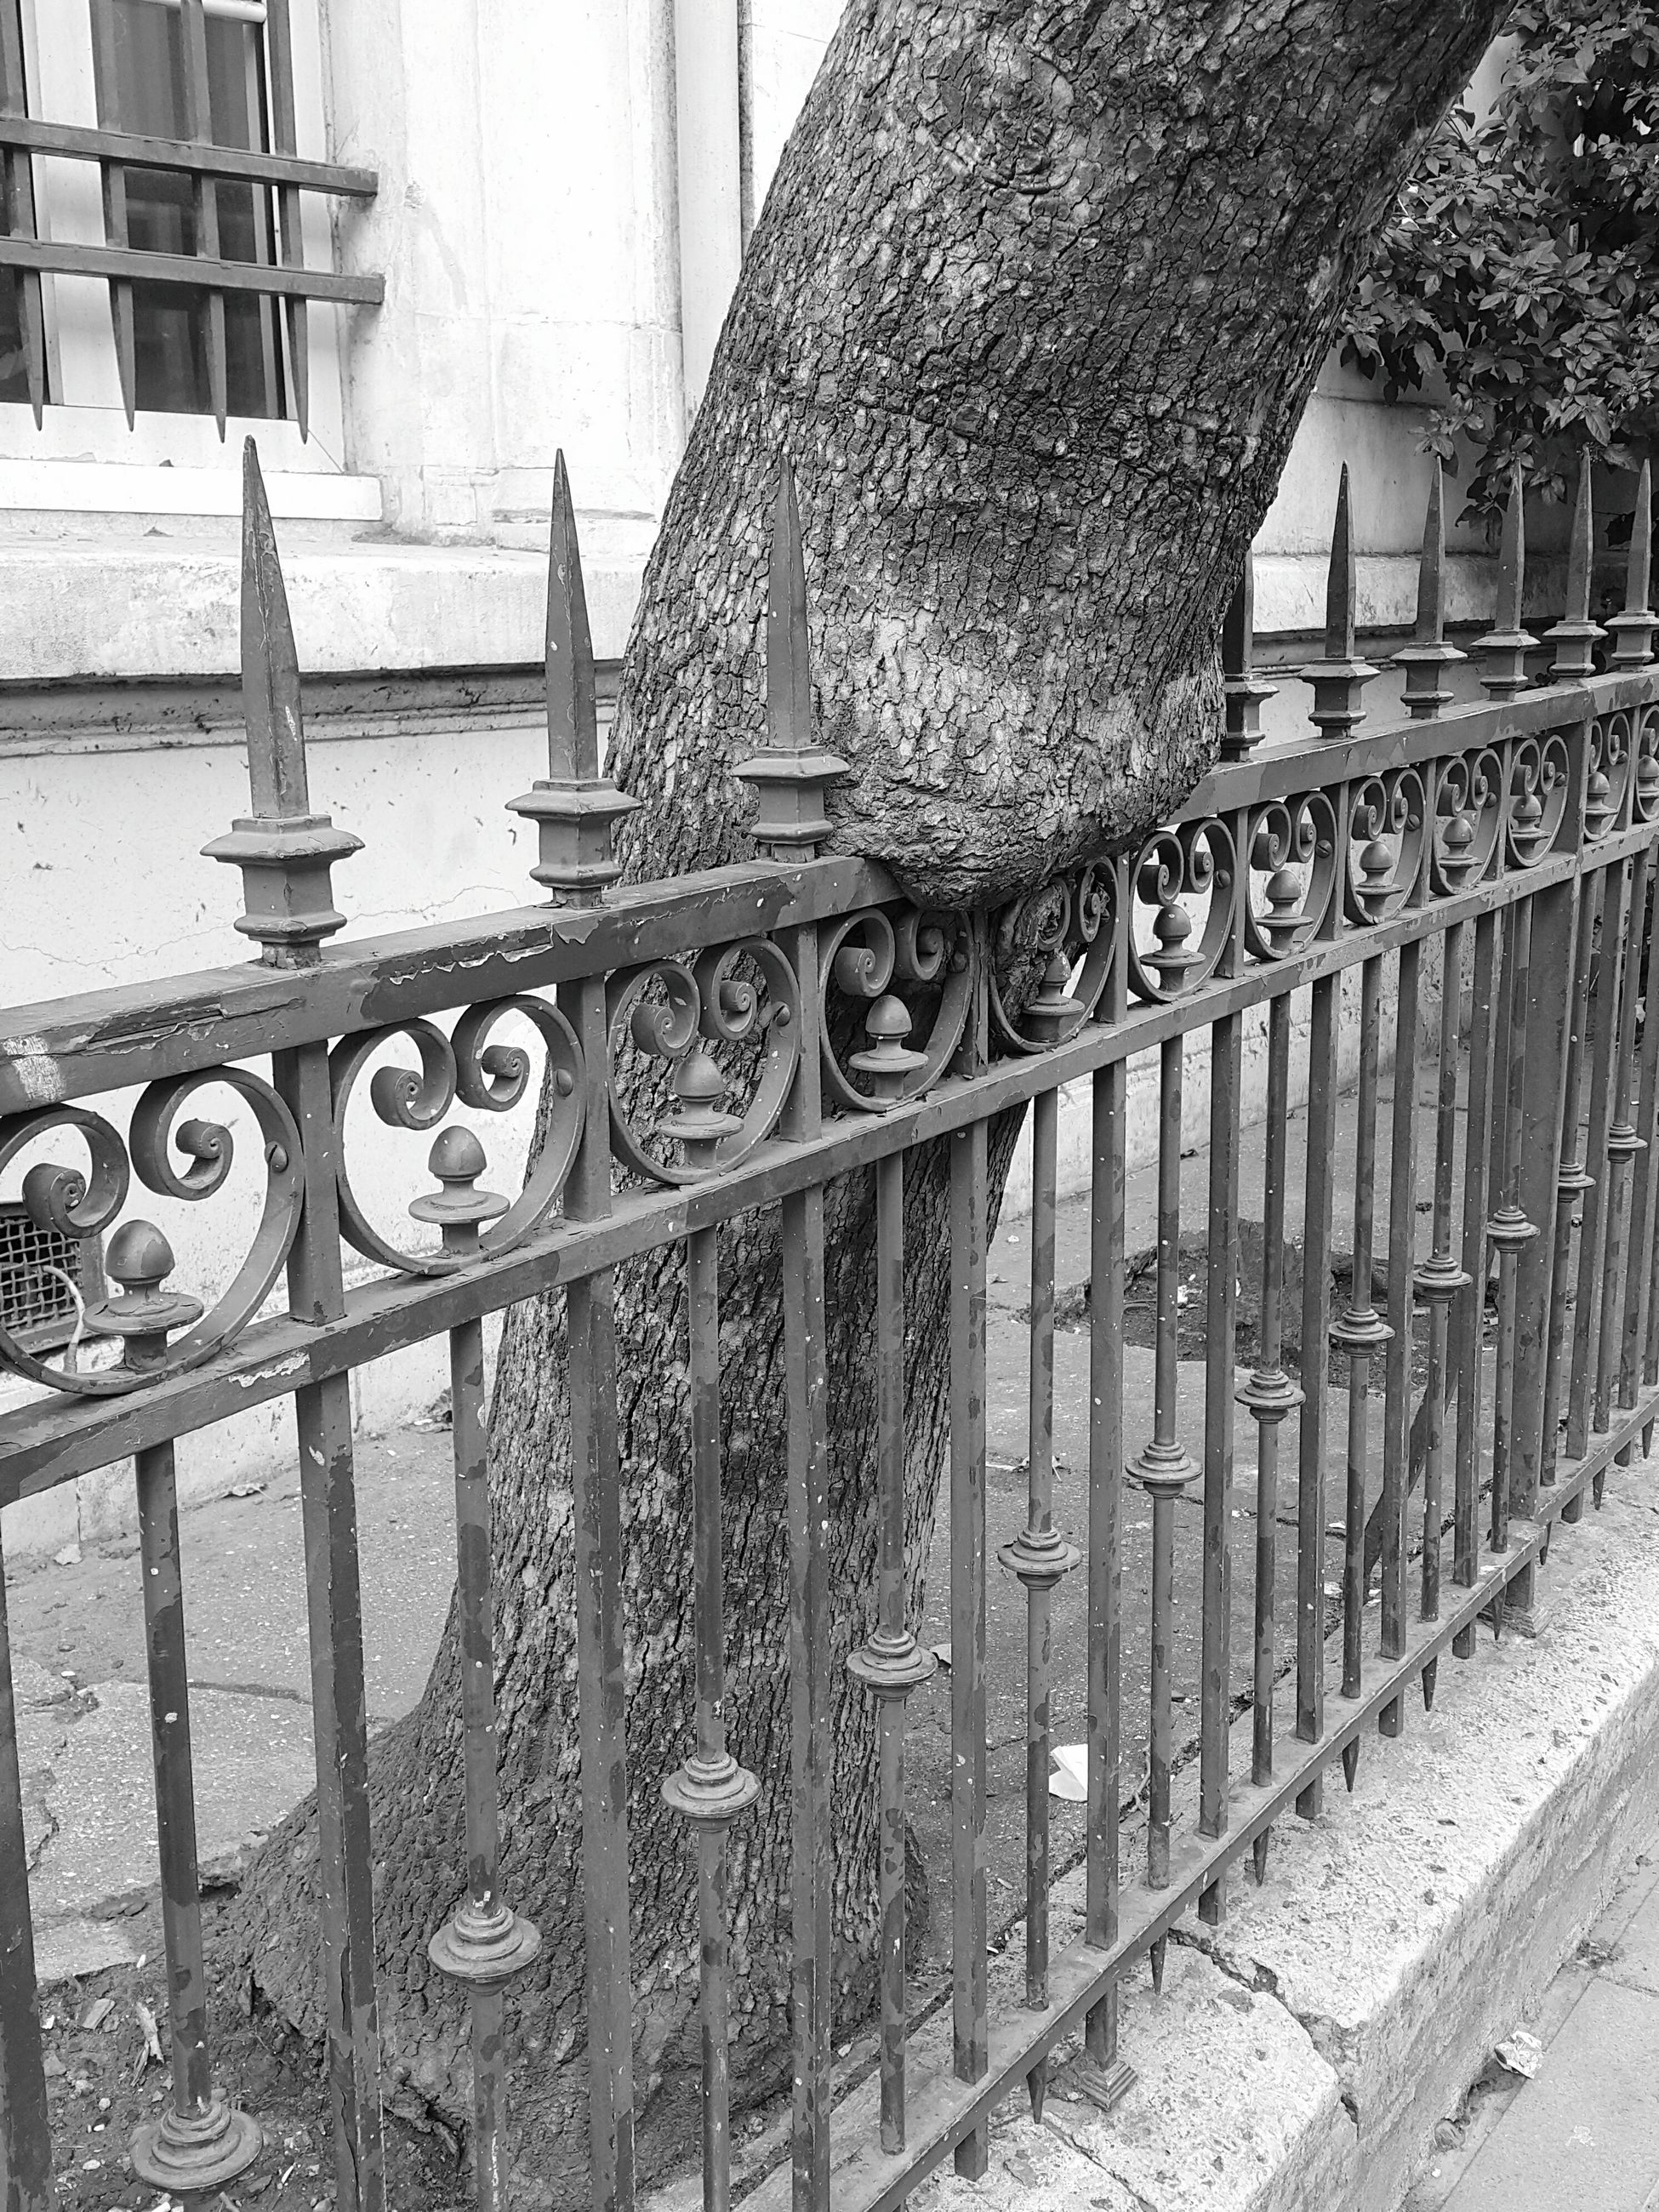 railing, architecture, built structure, no people, building exterior, day, metal, barrier, boundary, security, safety, protection, outdoors, fence, communication, building, nature, wrought iron, staircase, close-up